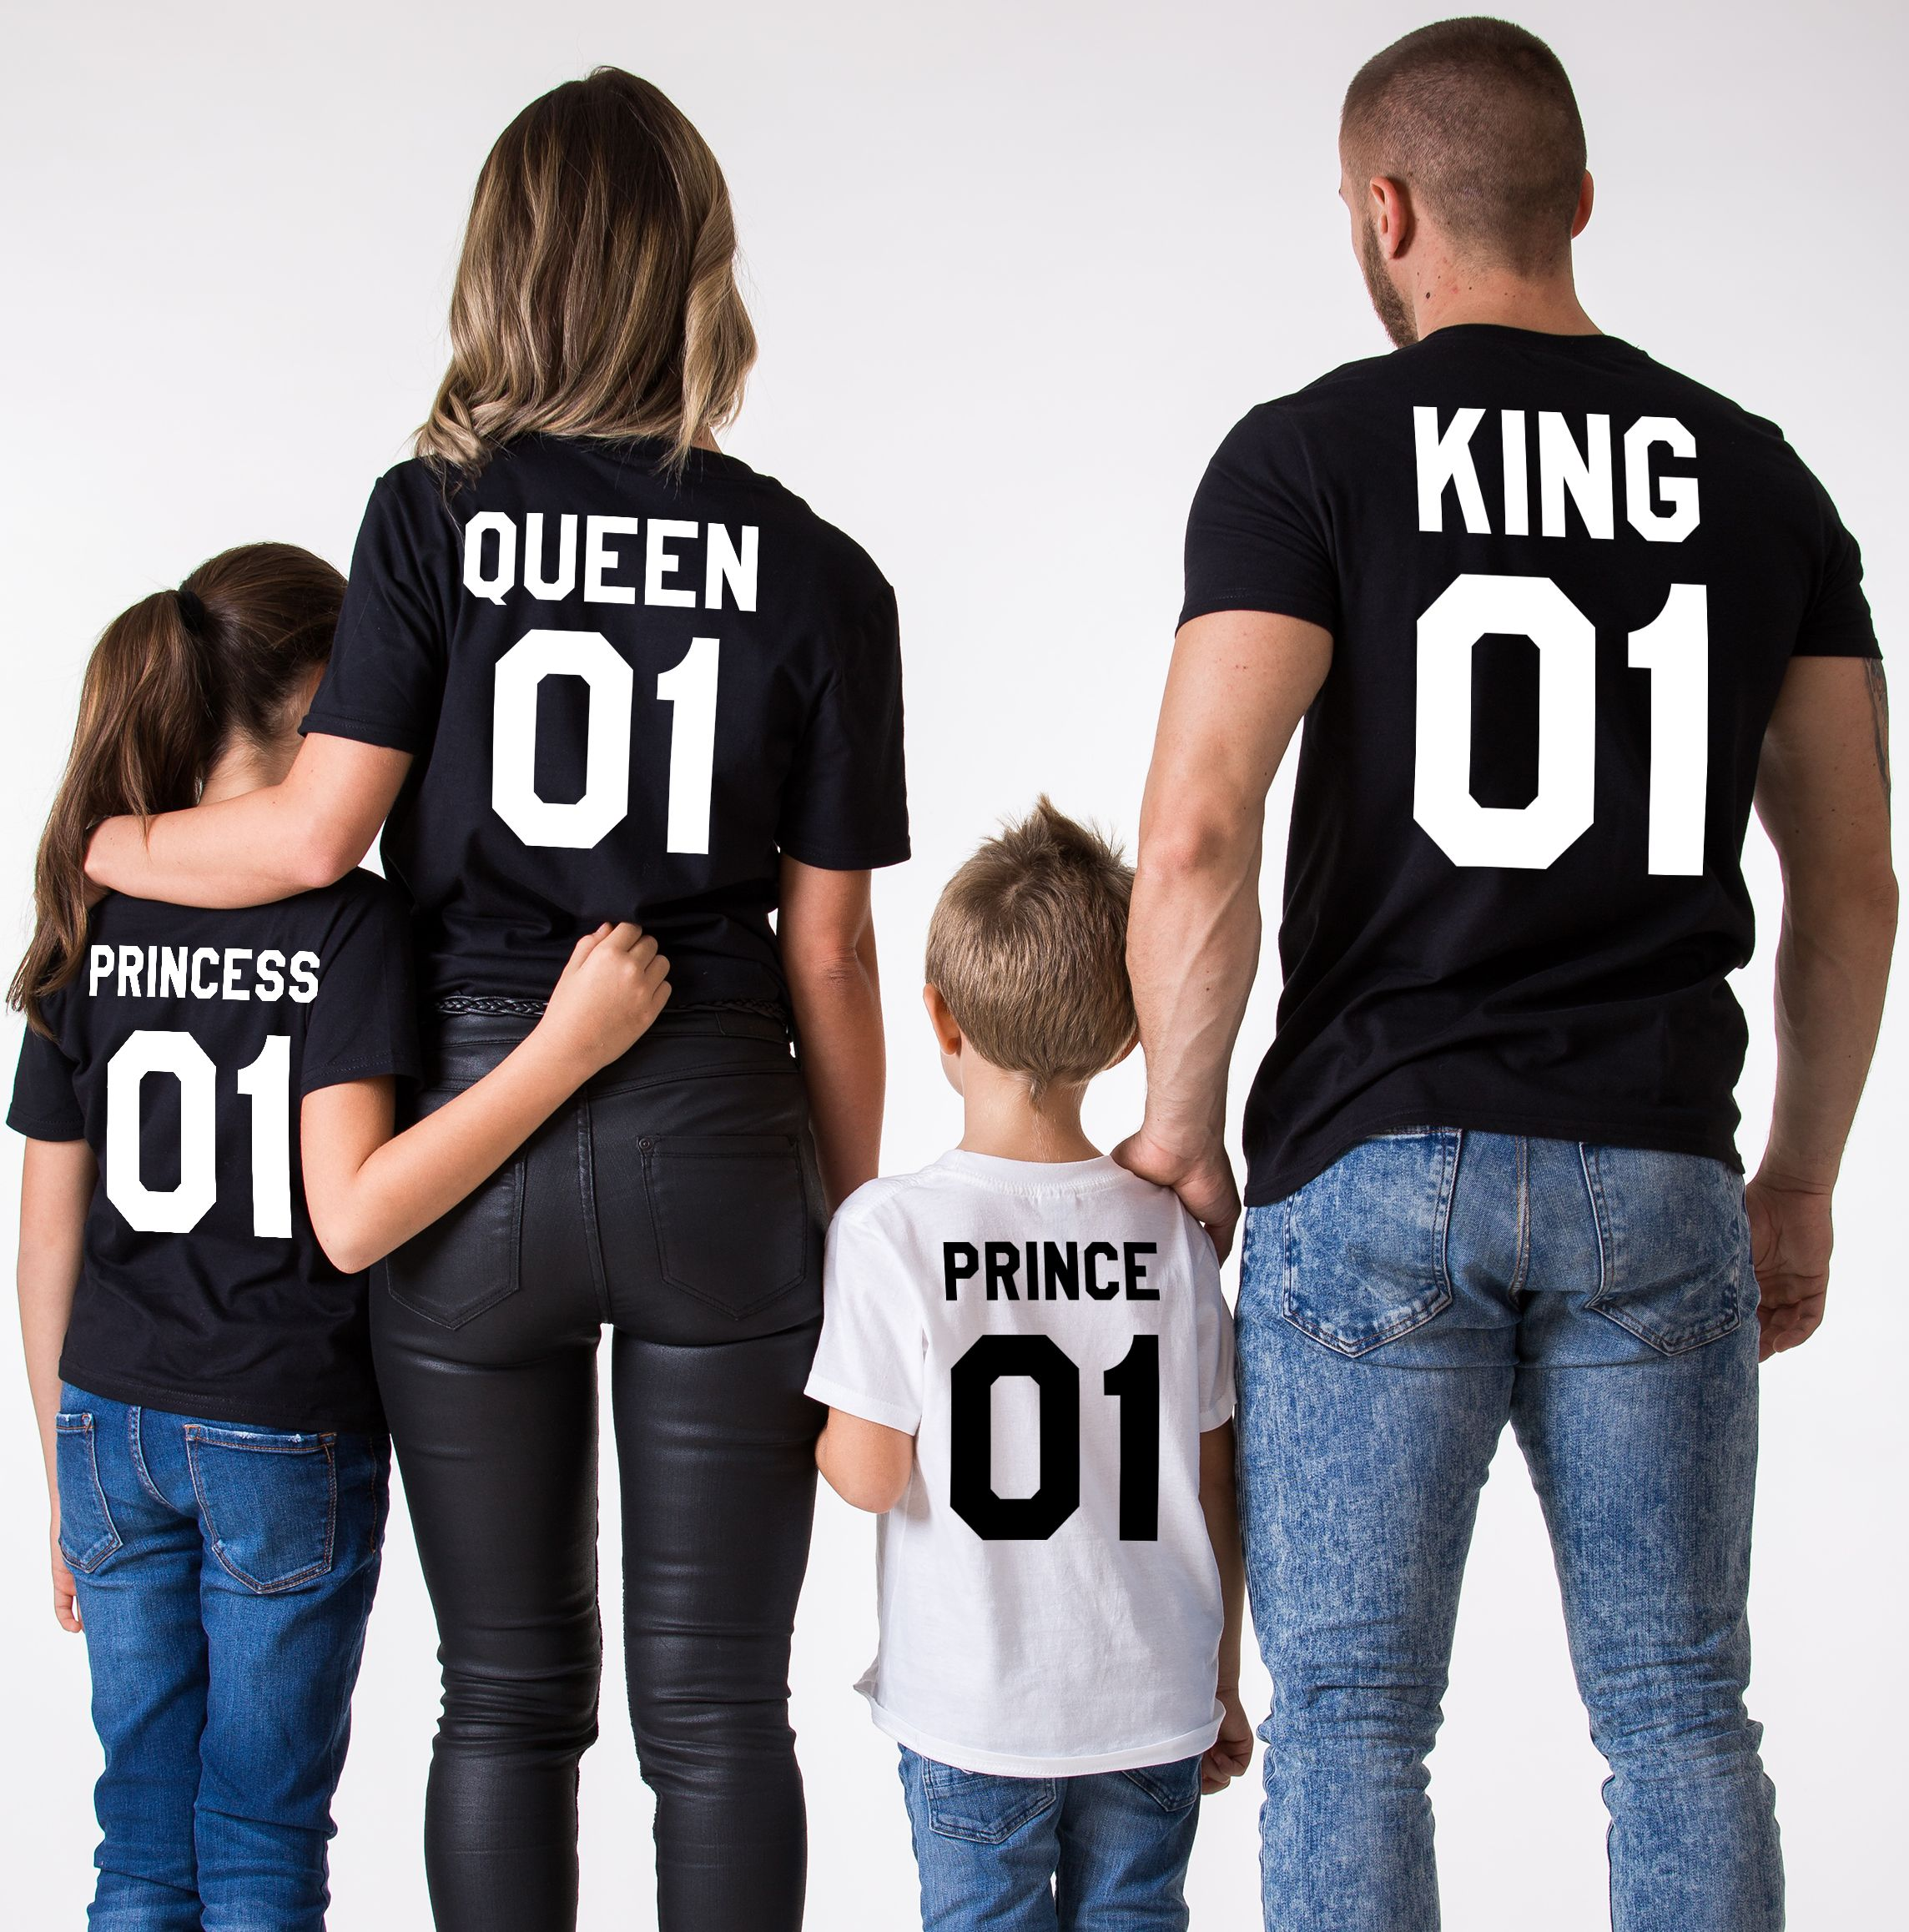 ee96dd46aa5ad King, Queen, Prince, Princess, Matching Family Shirts